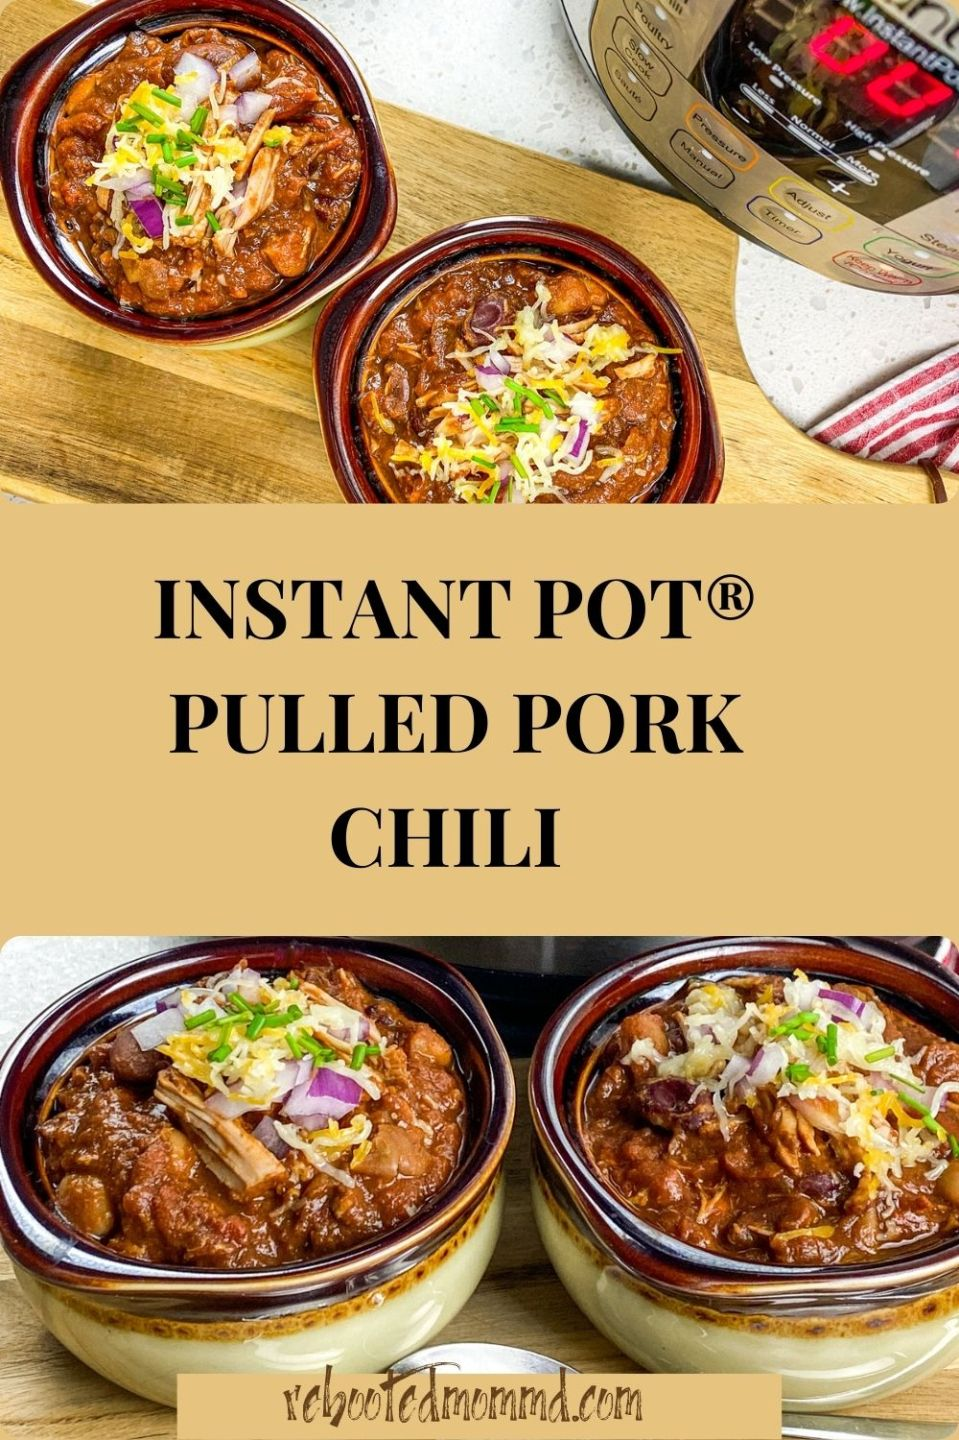 National Chili Month: Instant Pot® Pulled Pork Chili